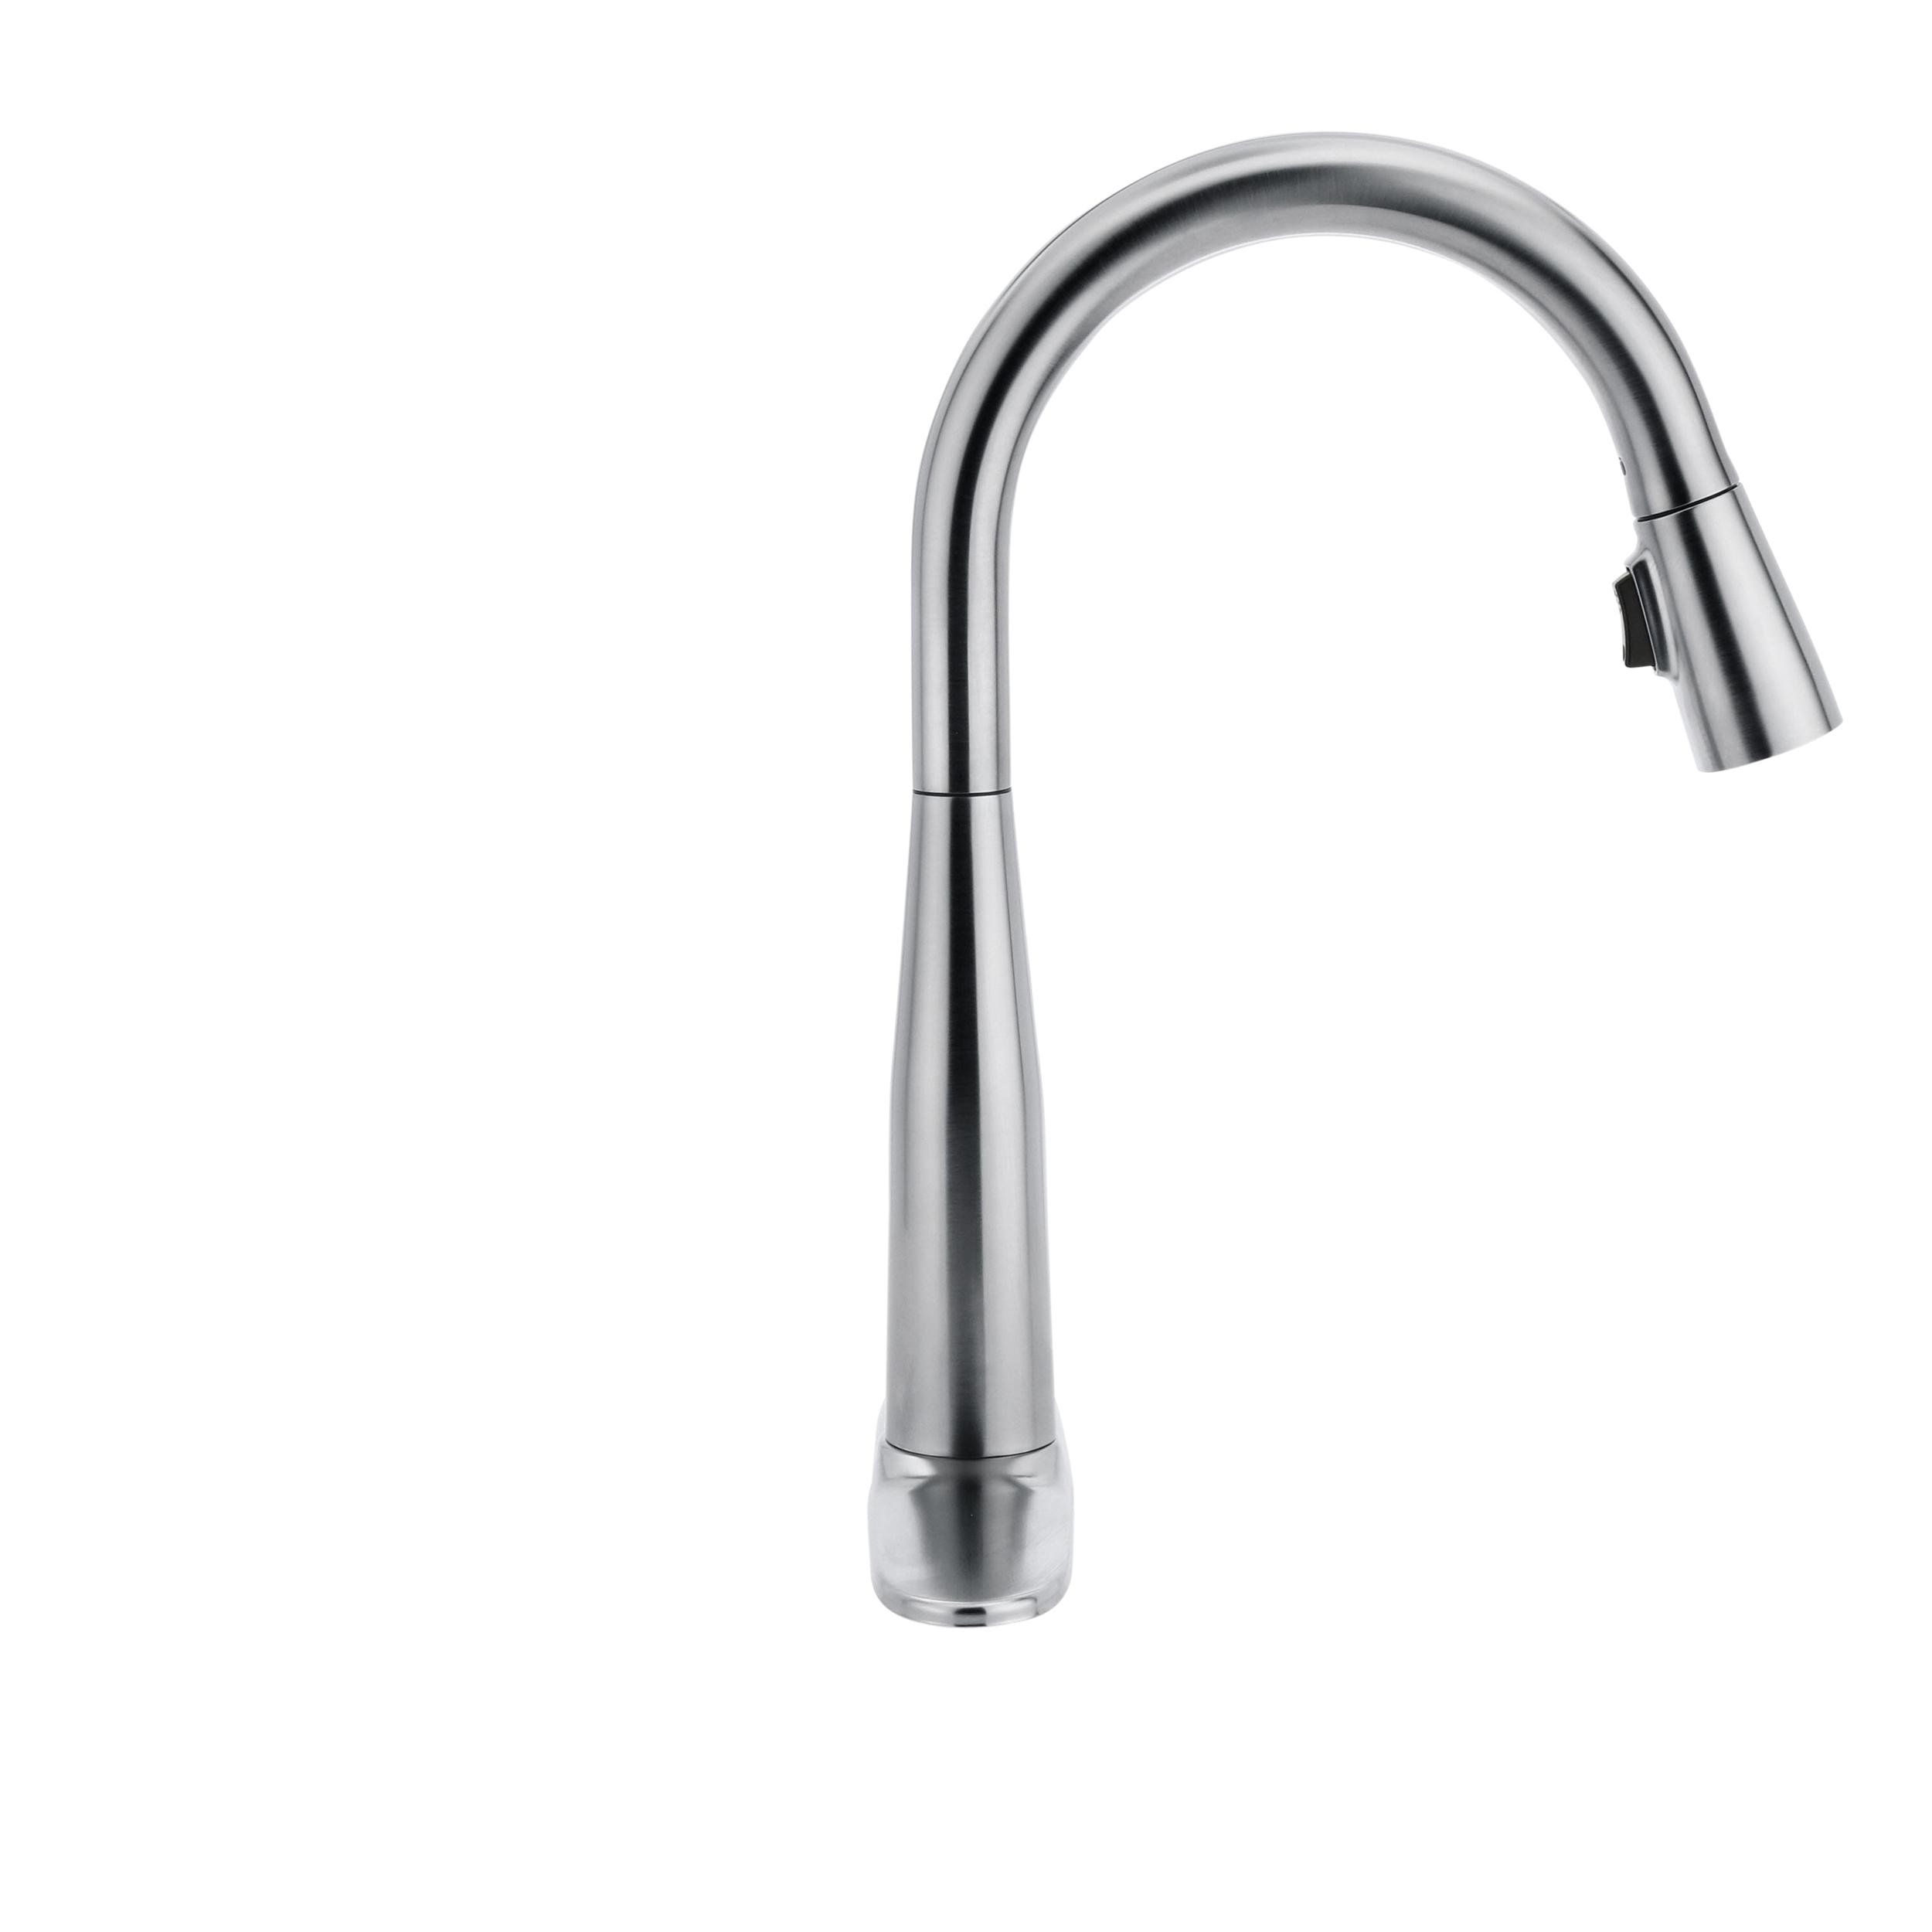 Delta Faucet Essa Single-Handle Kitchen Sink Faucet with Pull Down Sprayer and Magnetic Docking Spray Head, Arctic Stainless 9113-AR-DST by DELTA FAUCET (Image #10)